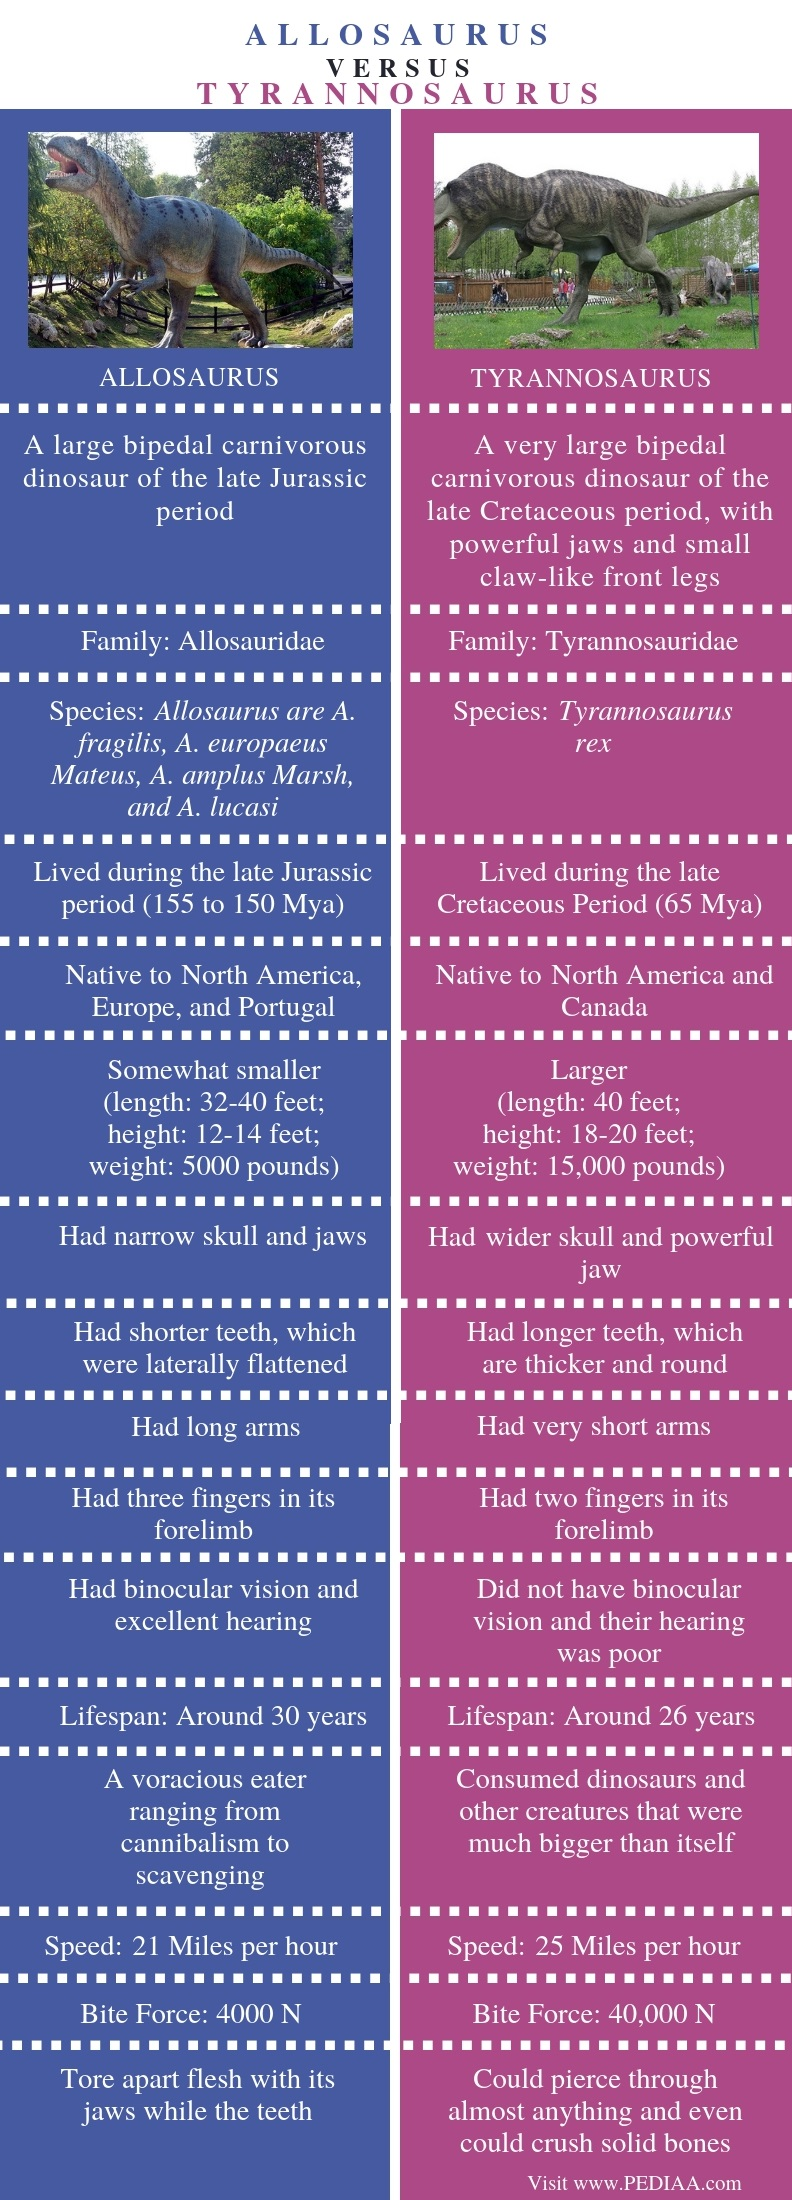 Difference Between Allosaurus and Tyrannosaurus - Comparison Summary